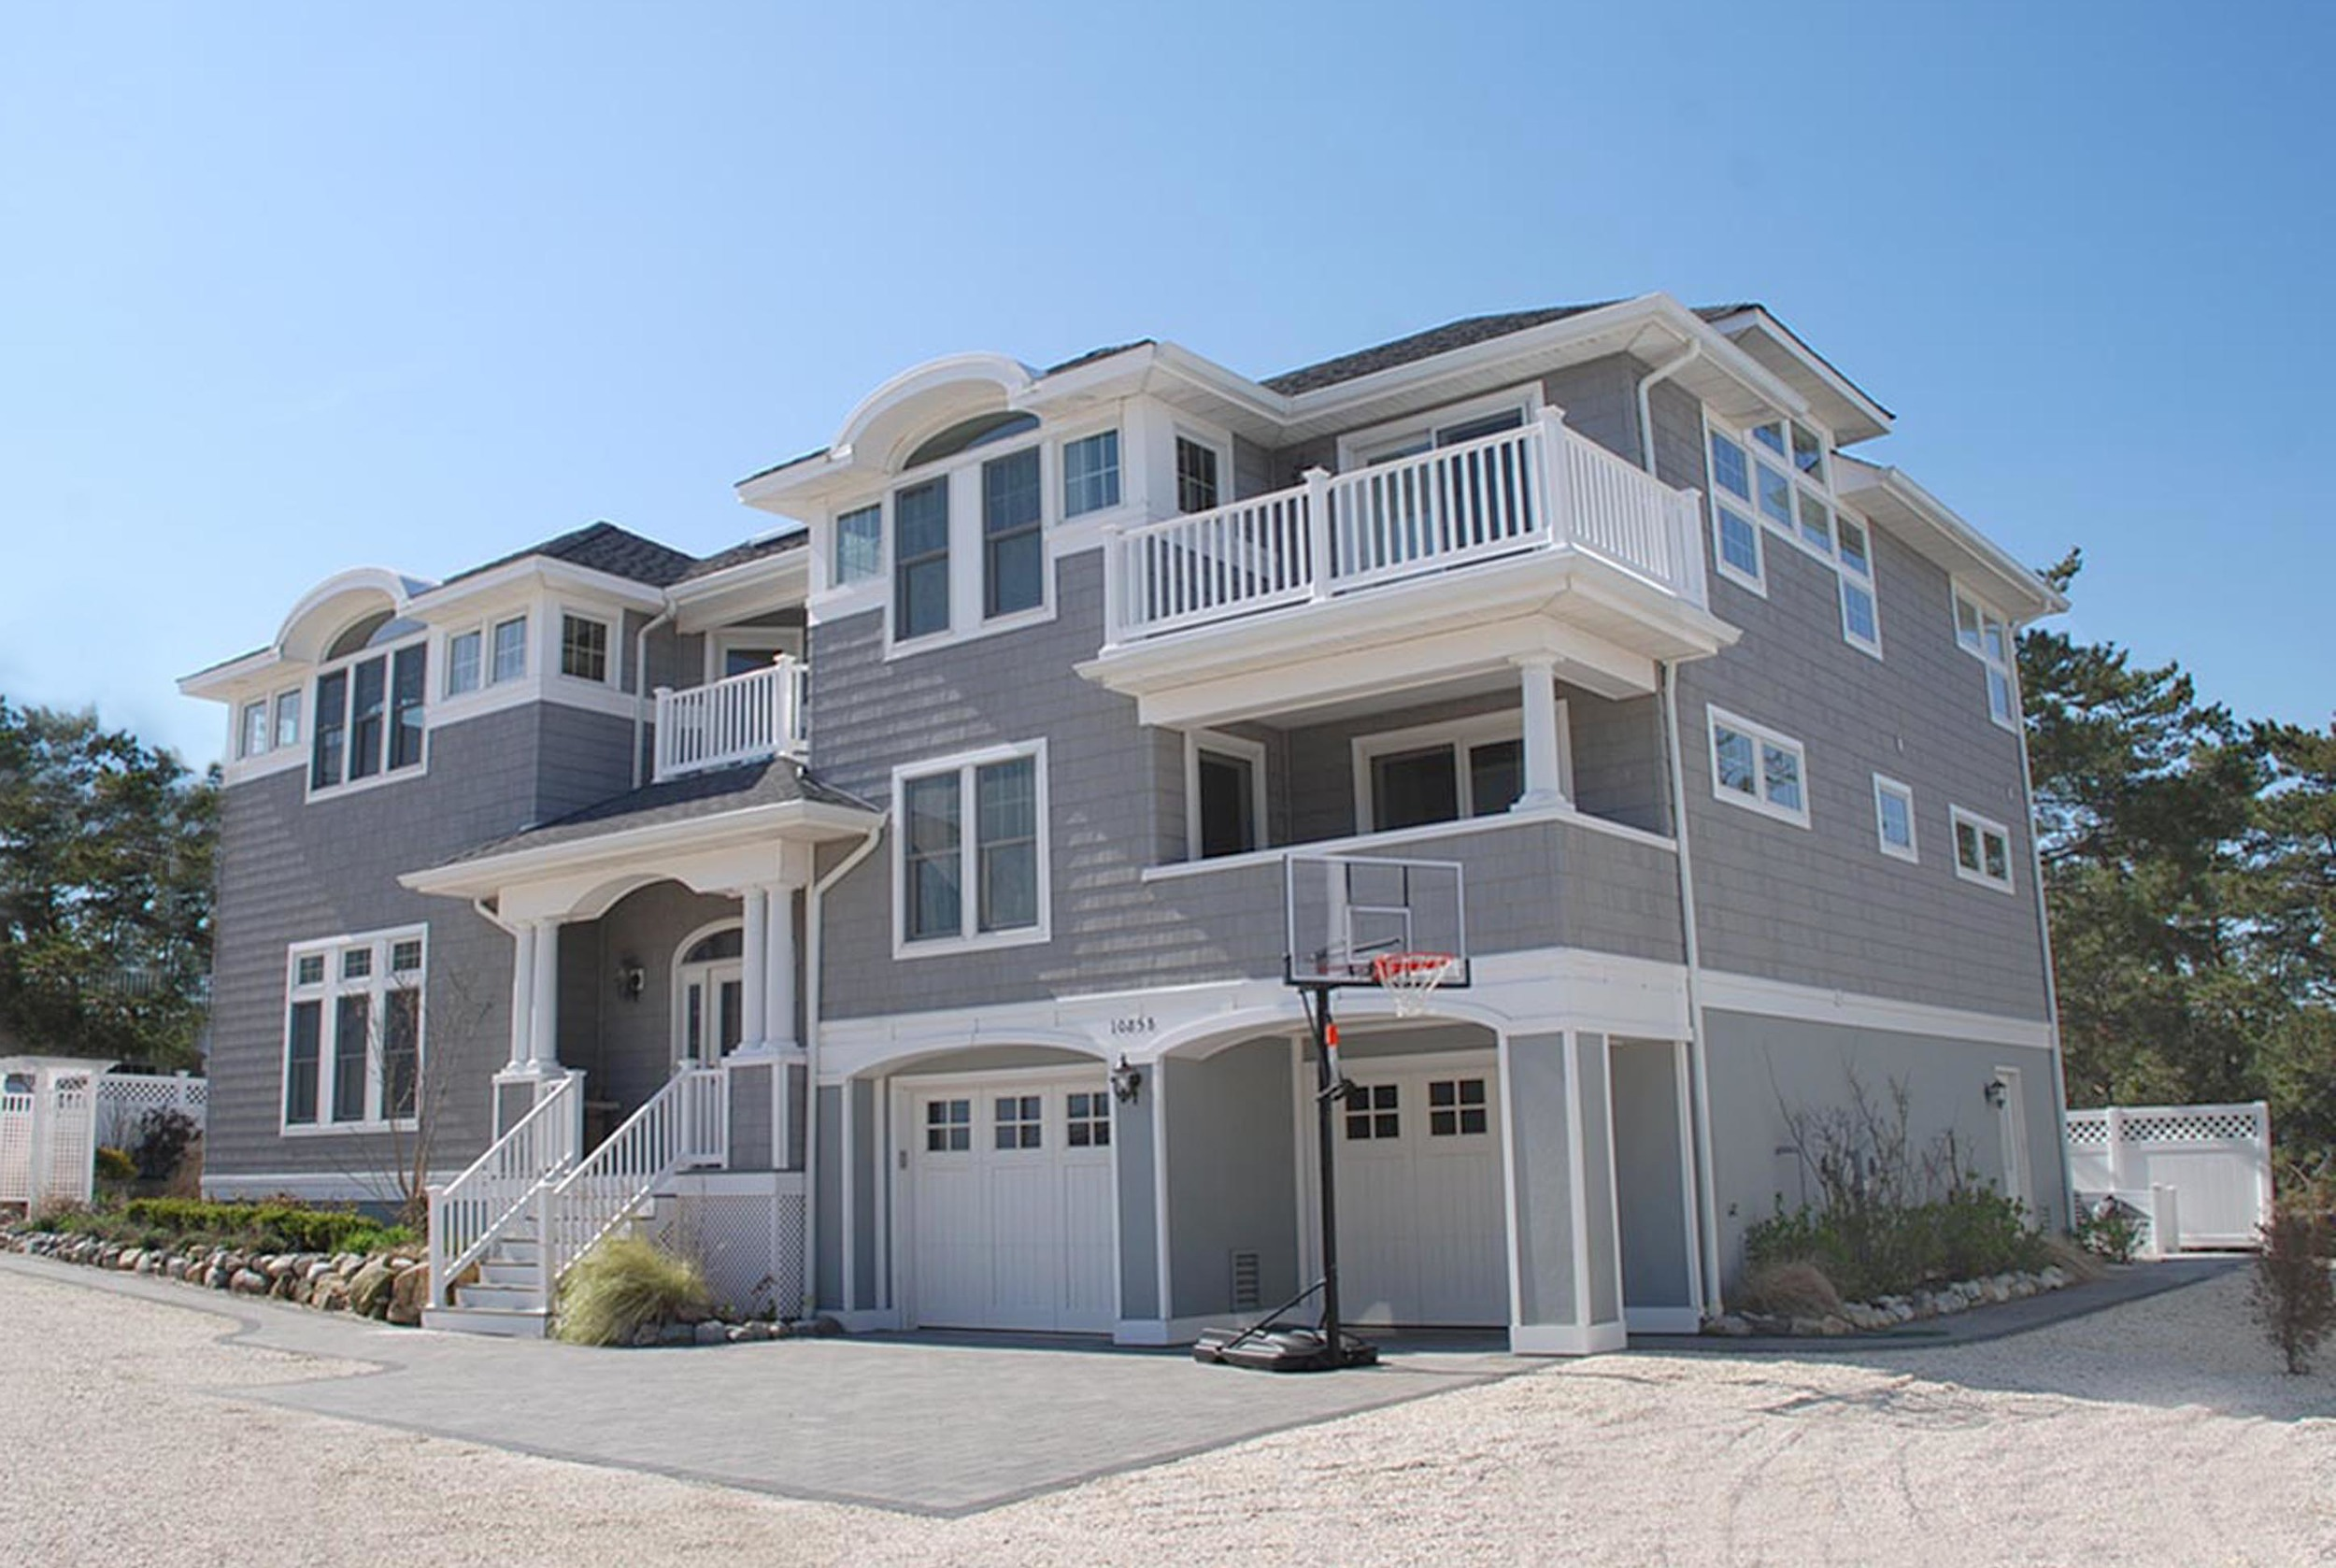 1085 B Long Beach Blvd., North Beach, NJ.jpg